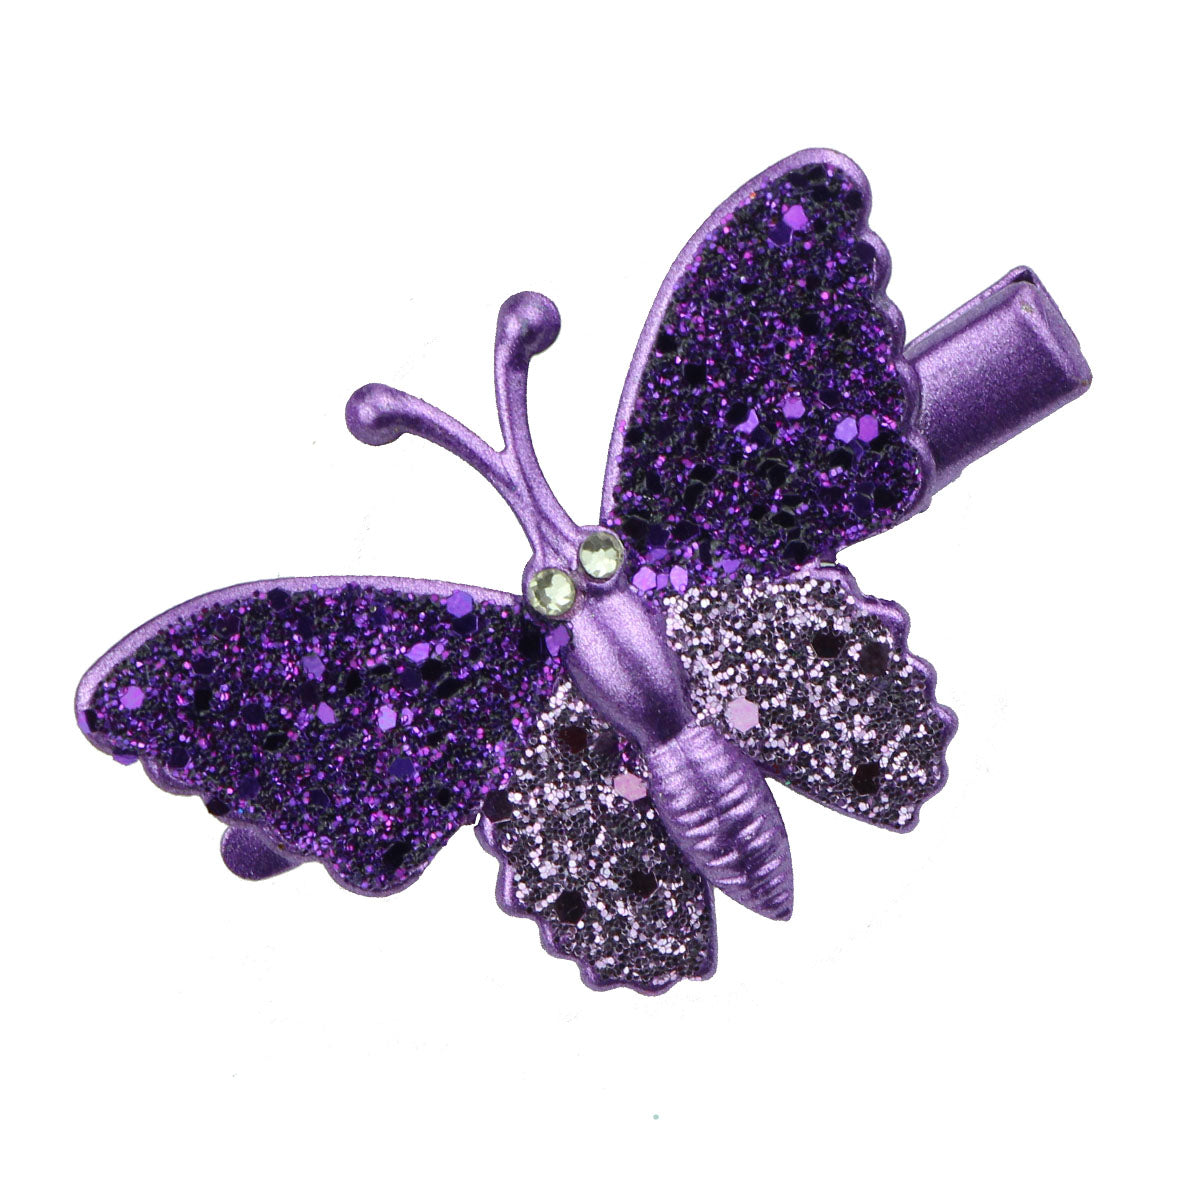 purple gold rhinestone glitter butterfly alligator hair clip barrettes hair grips girl hair accessories at factory price 6494 - SOHOBUCKS CO.,LIMITED